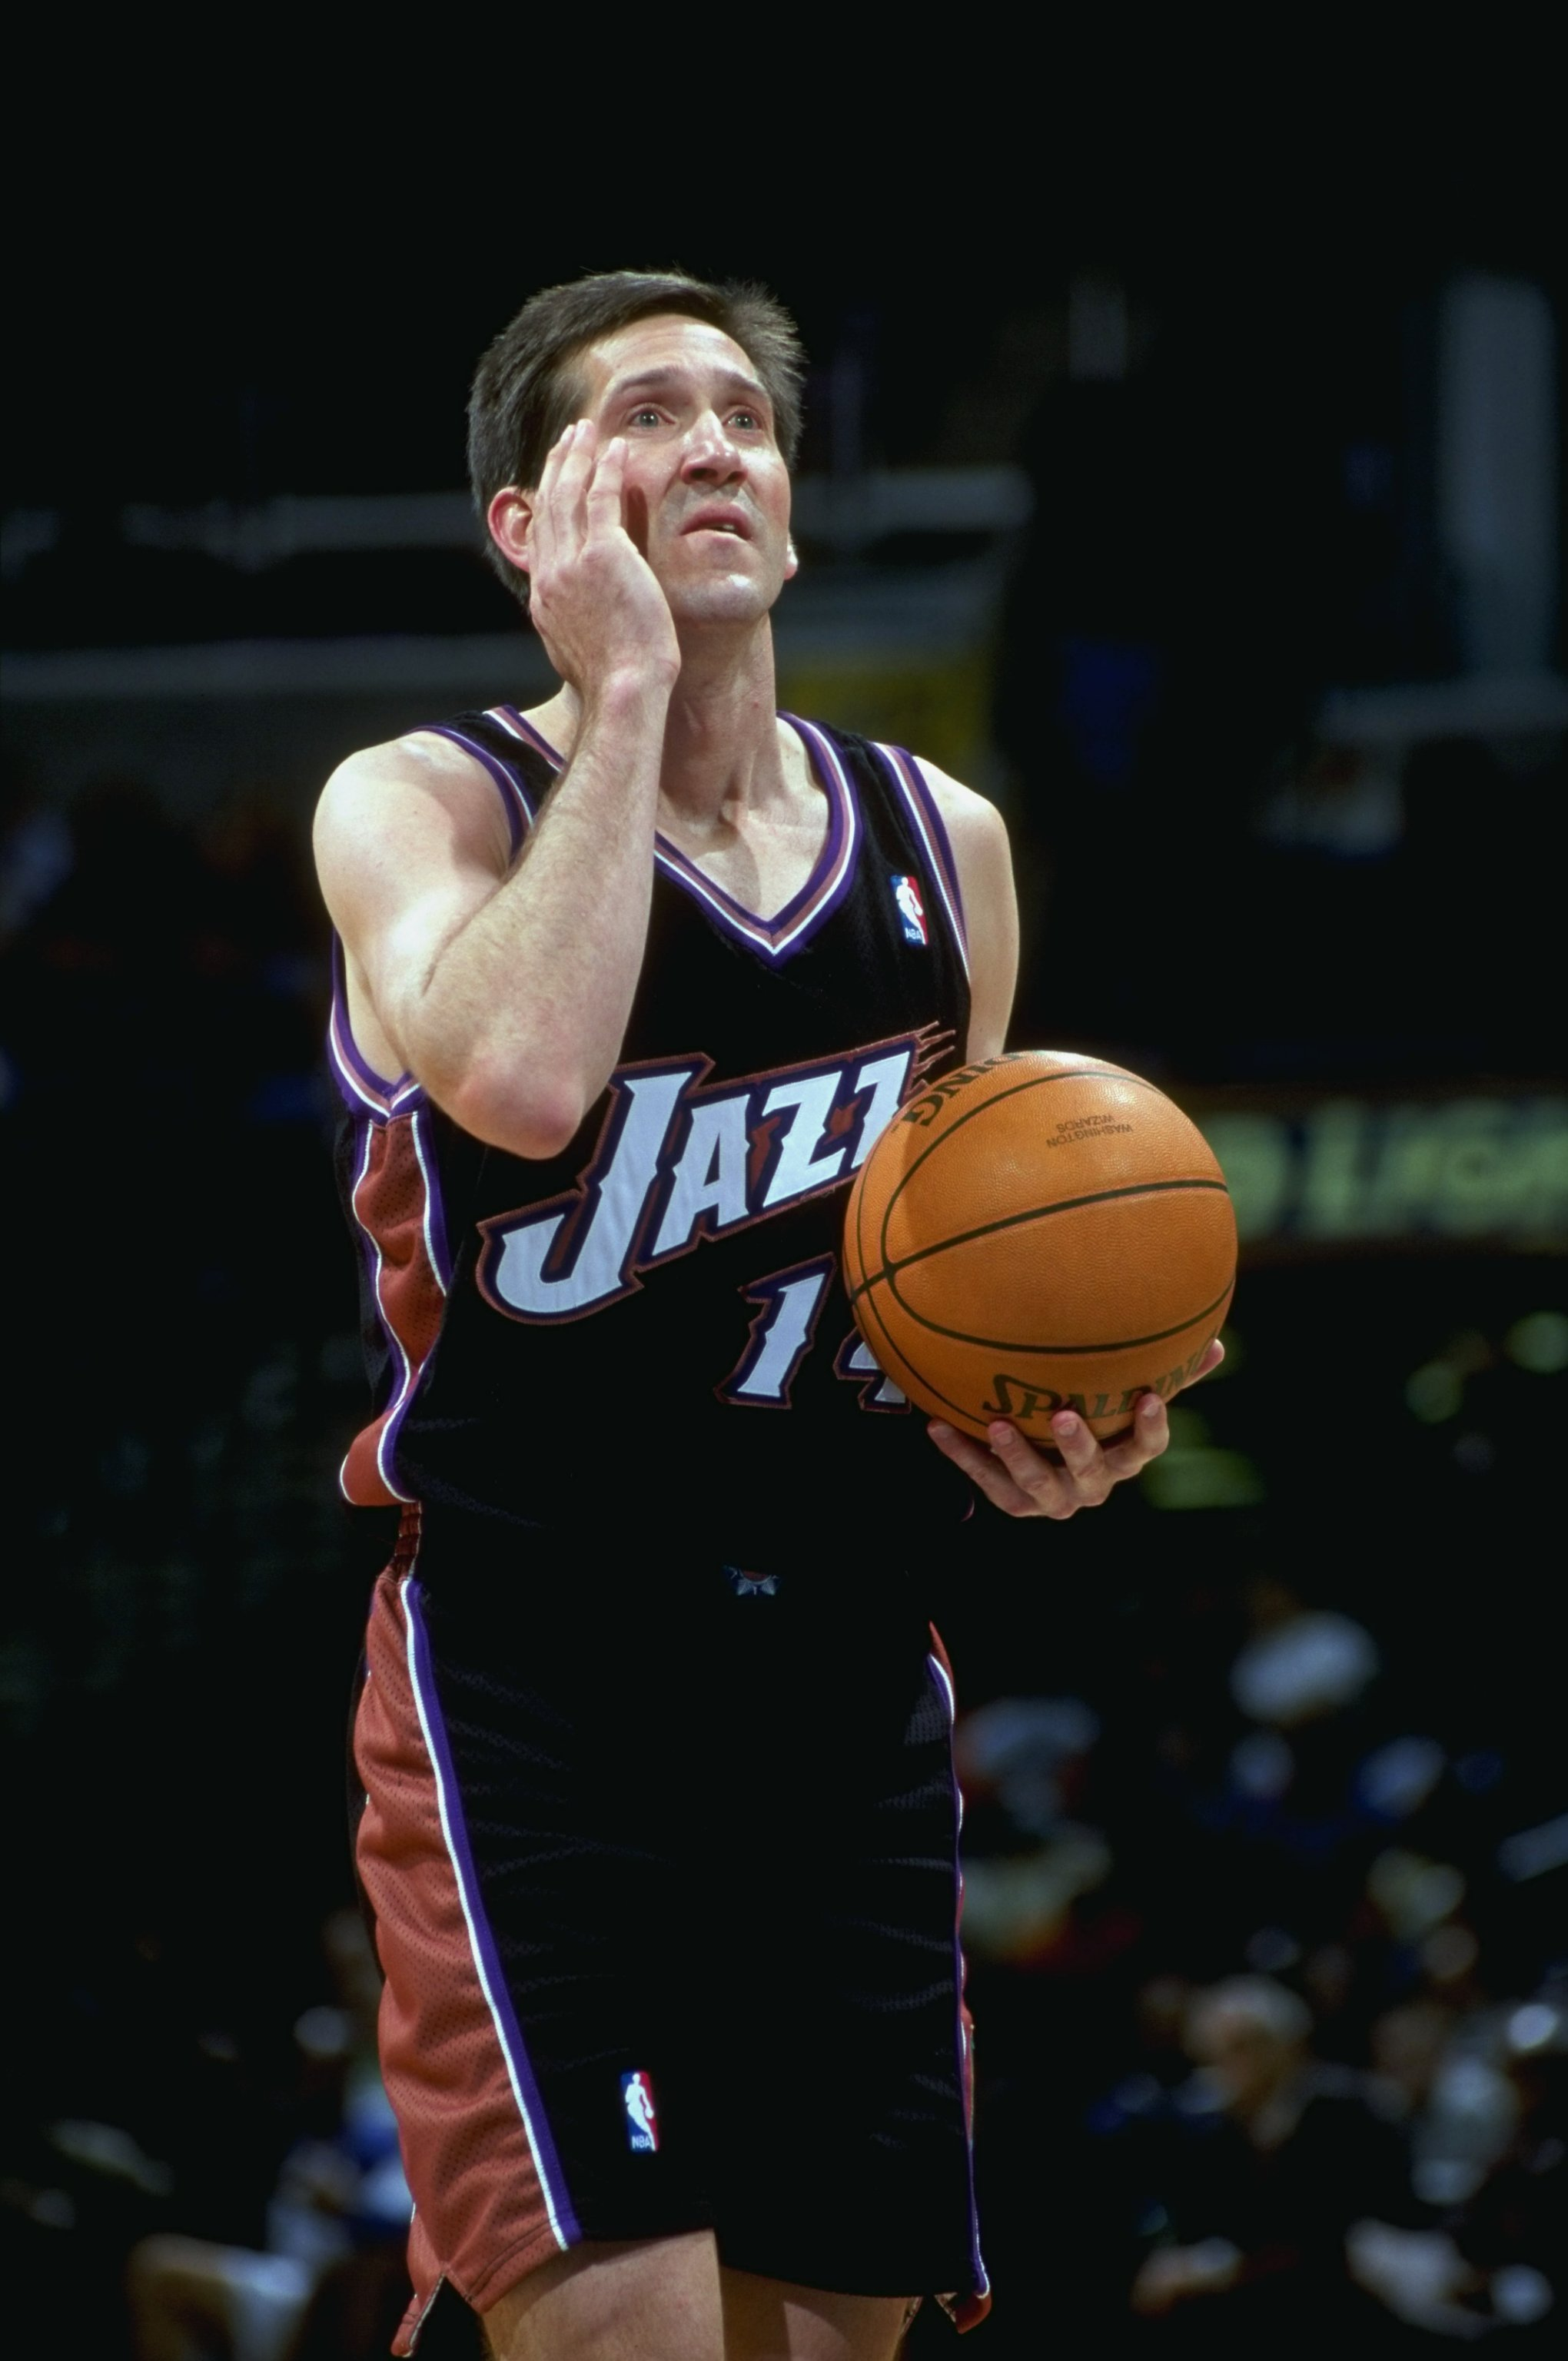 18 Mar 1999:  Jeff Hornacek #14 of the Utah Jazz signals 'hi' to his kids at home while getting ready to shoot a free throw during the game against the Washington Wizards at the MCI Center in Washington, D.C. The Jazz defeated the Wizards 95-87.   Mandato